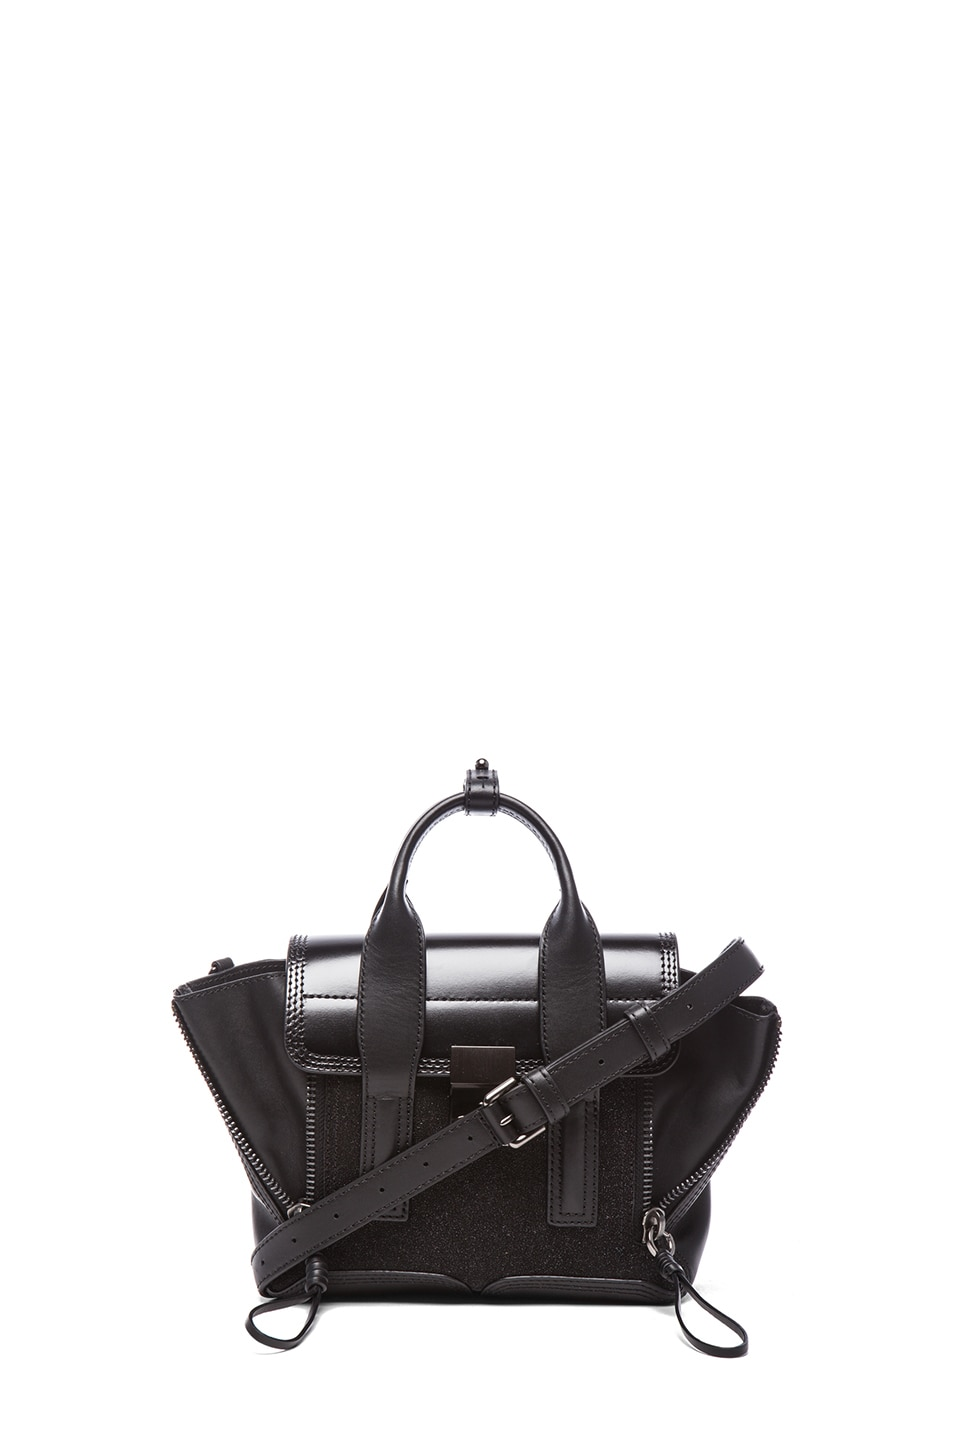 Image 1 of 3.1 phillip lim Mini Pashli Satchel in Gunmetal Black